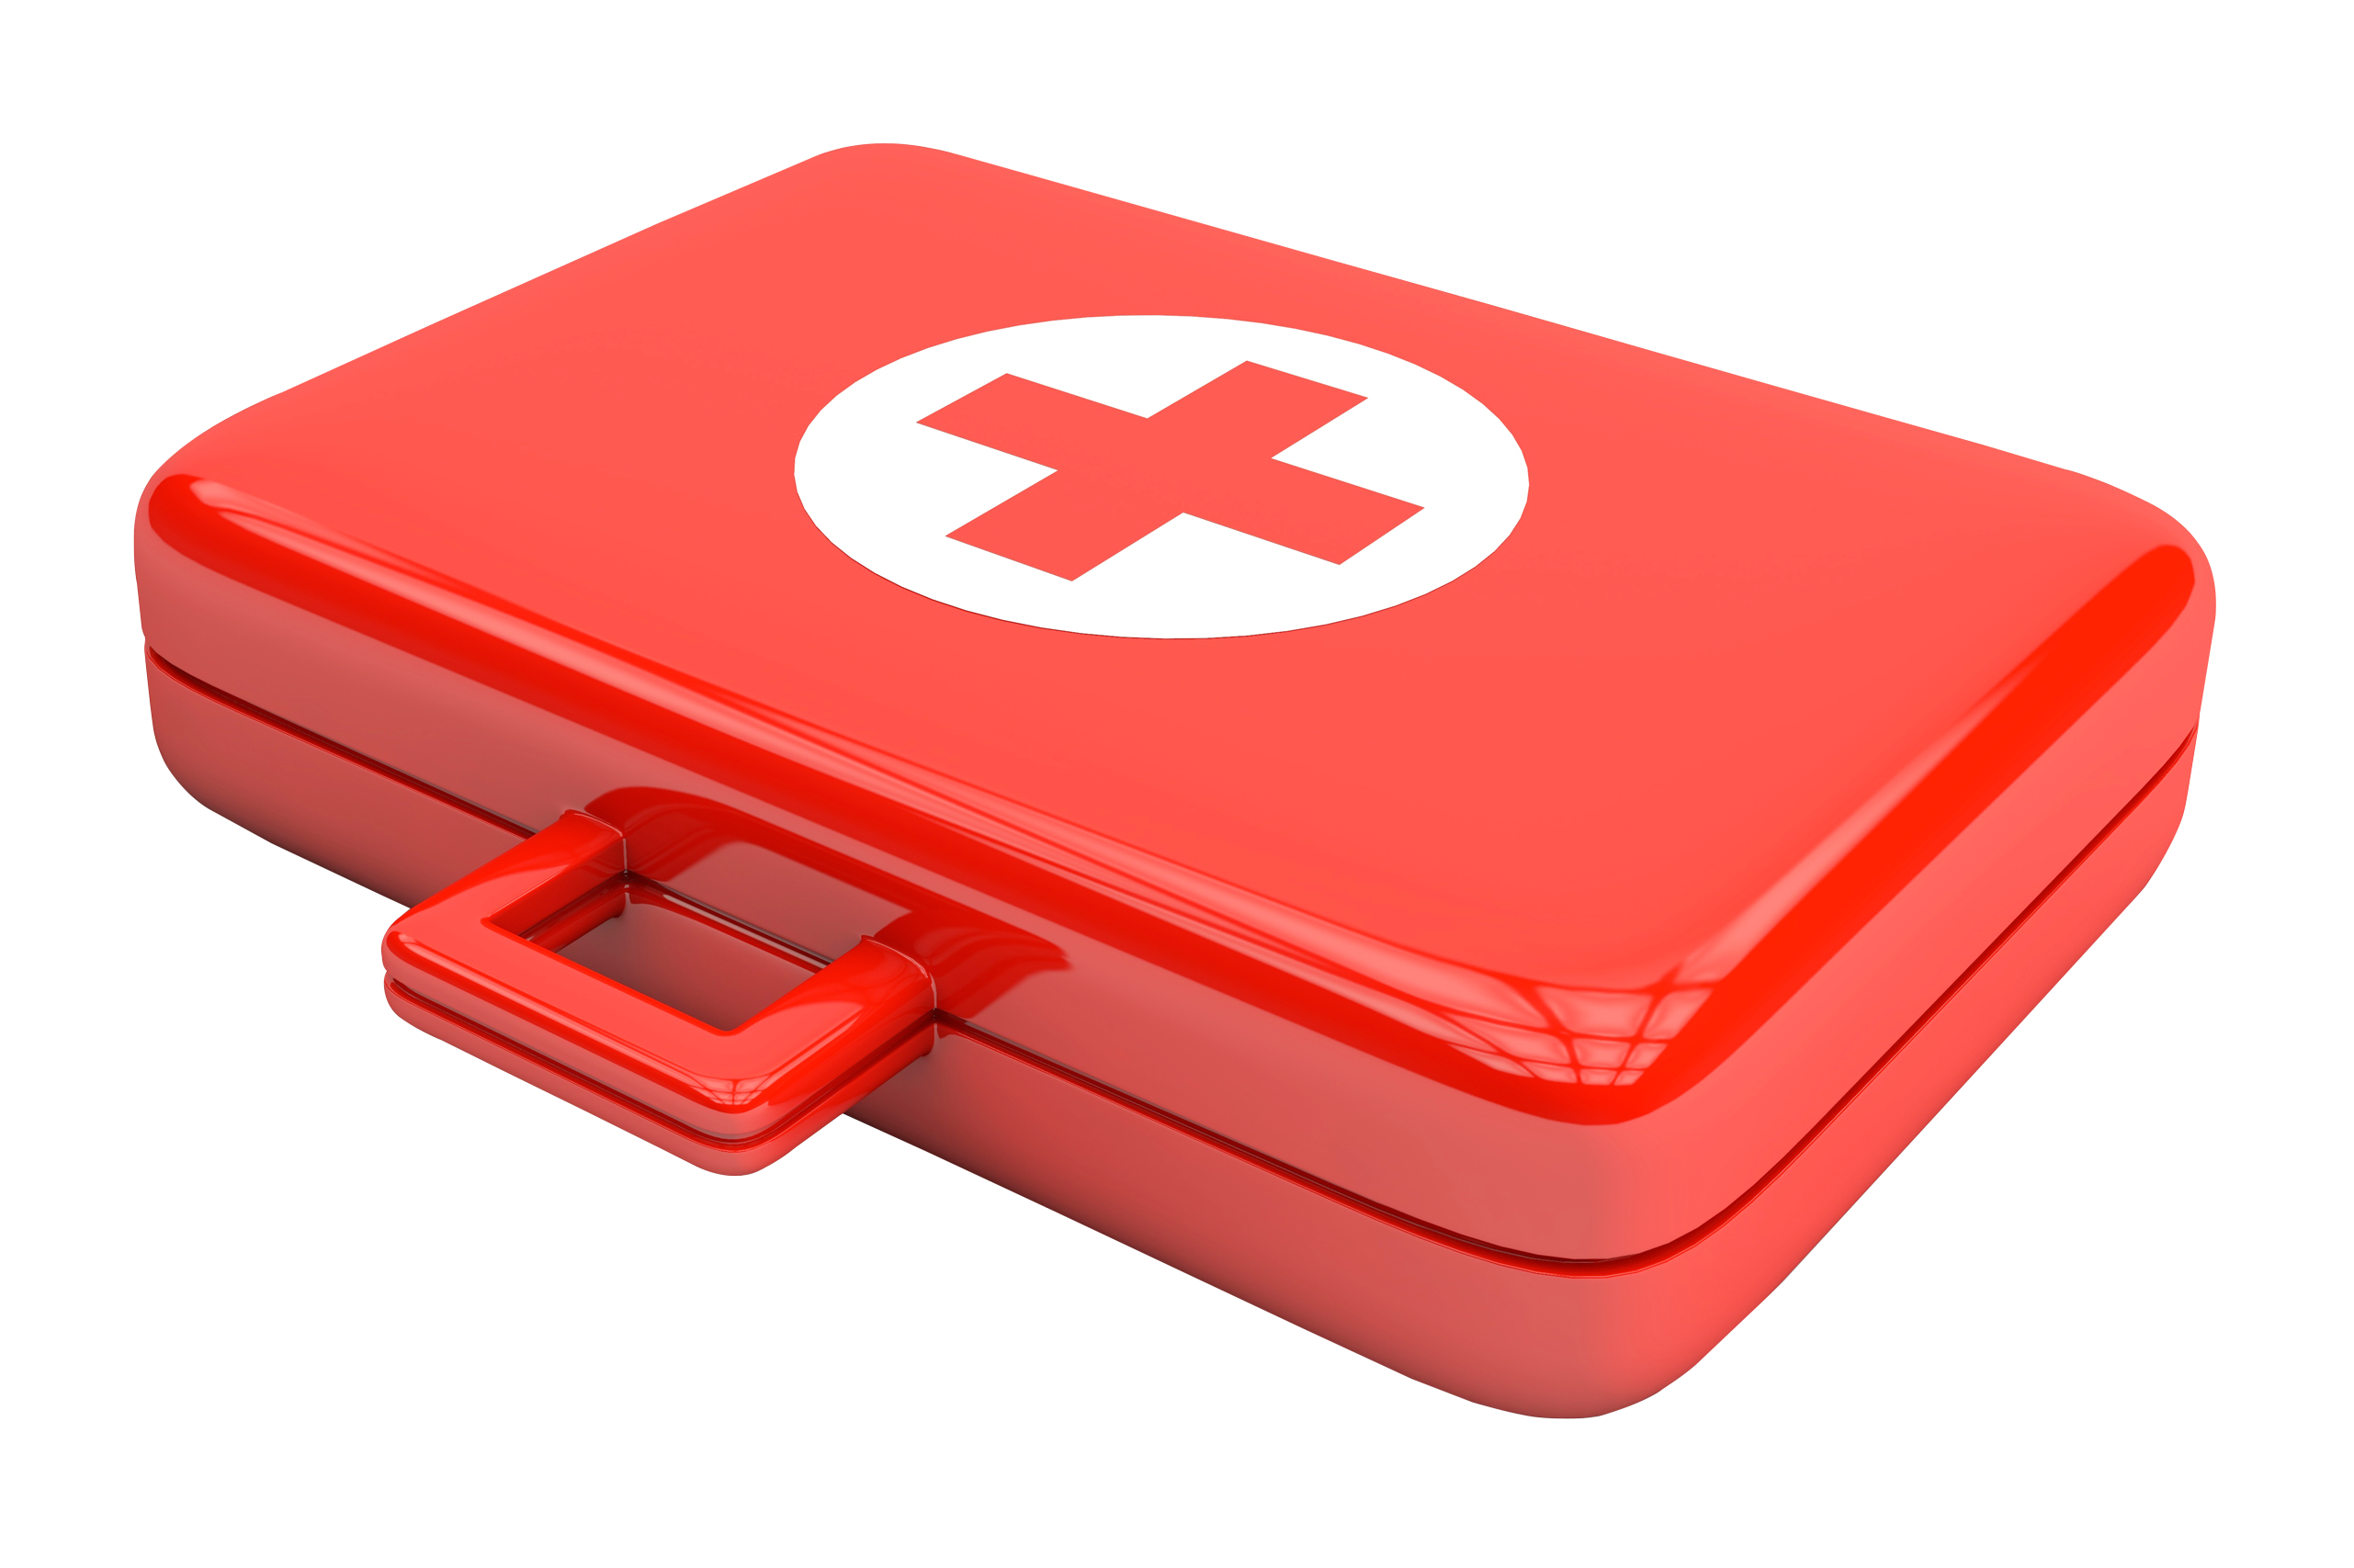 First Aid Kit Hd PNG Image